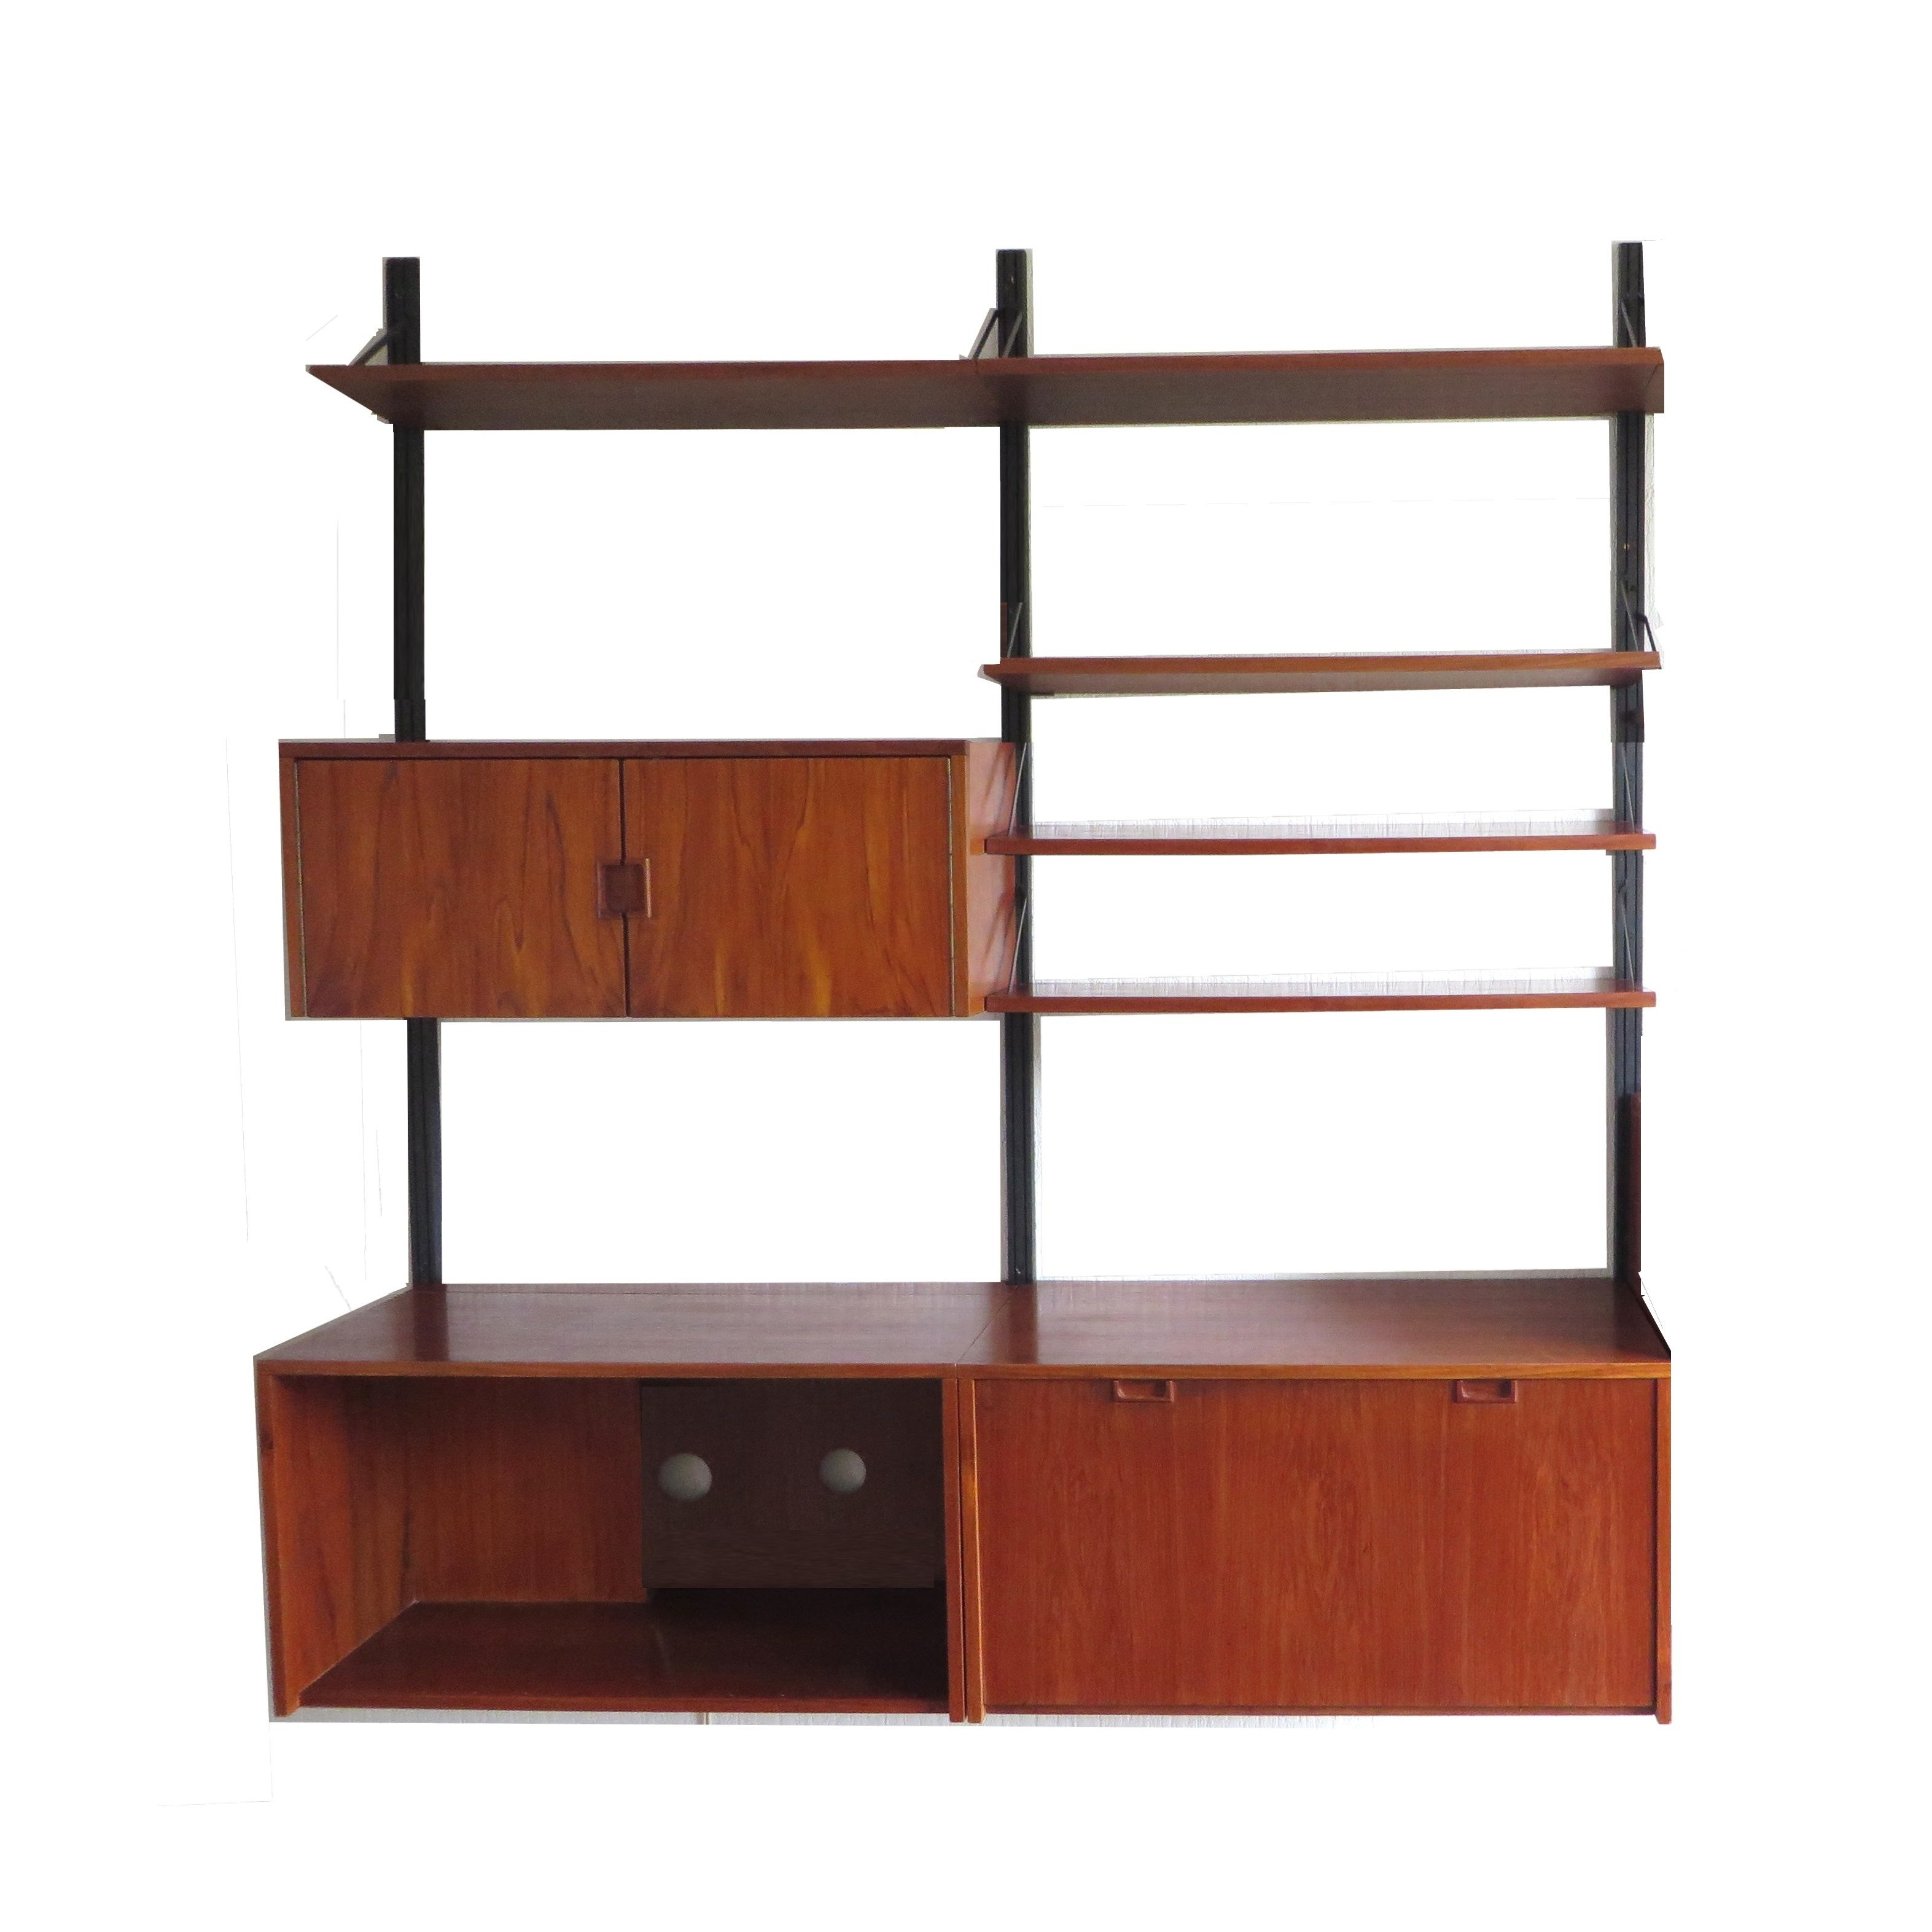 best service 01987 1af2b Vintage wall unit / shelving unit from the 60s